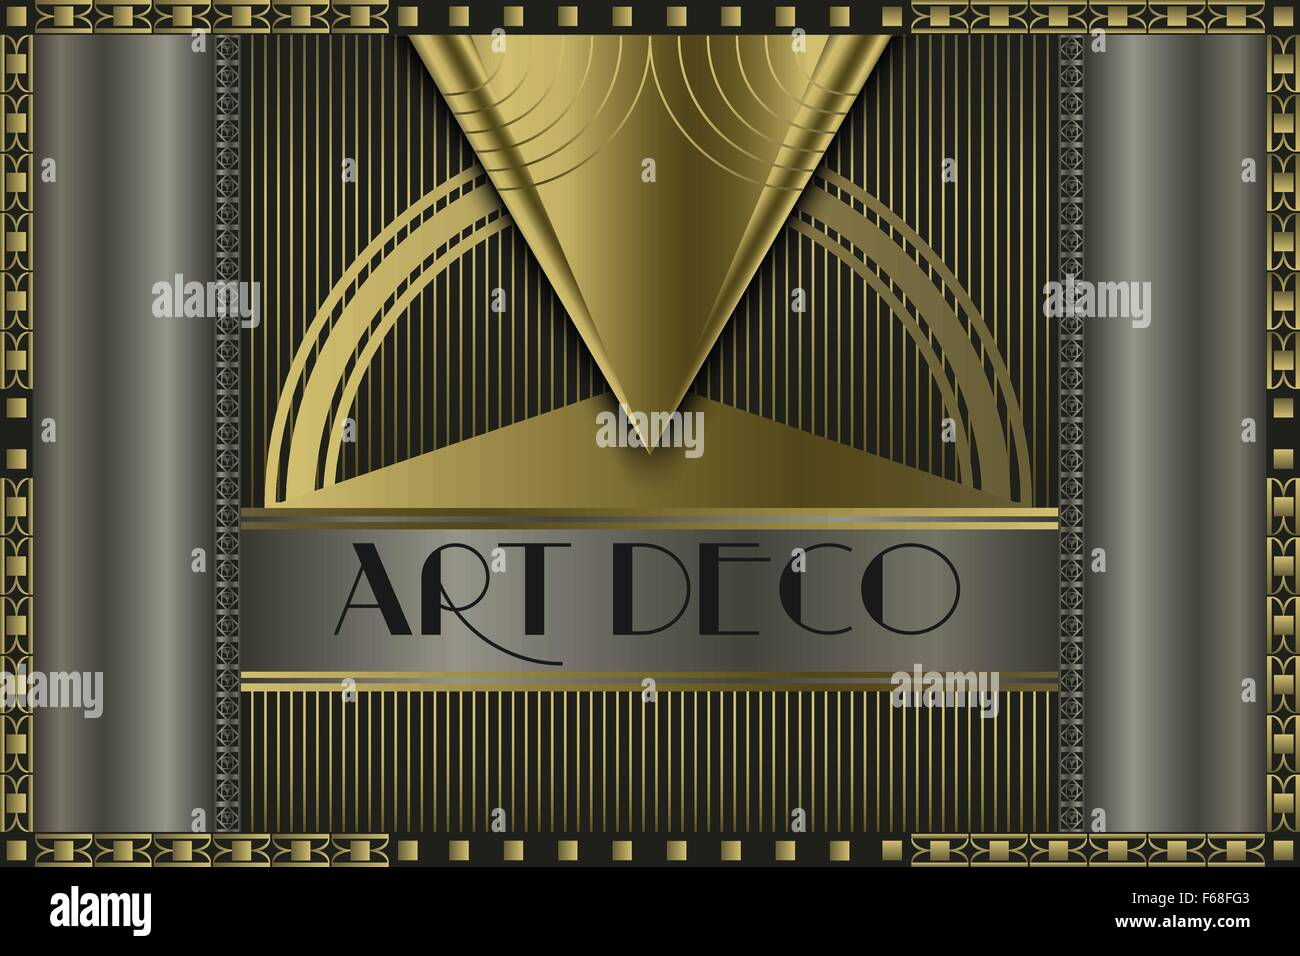 art deco geometric vintage frame for your company name. Black Bedroom Furniture Sets. Home Design Ideas